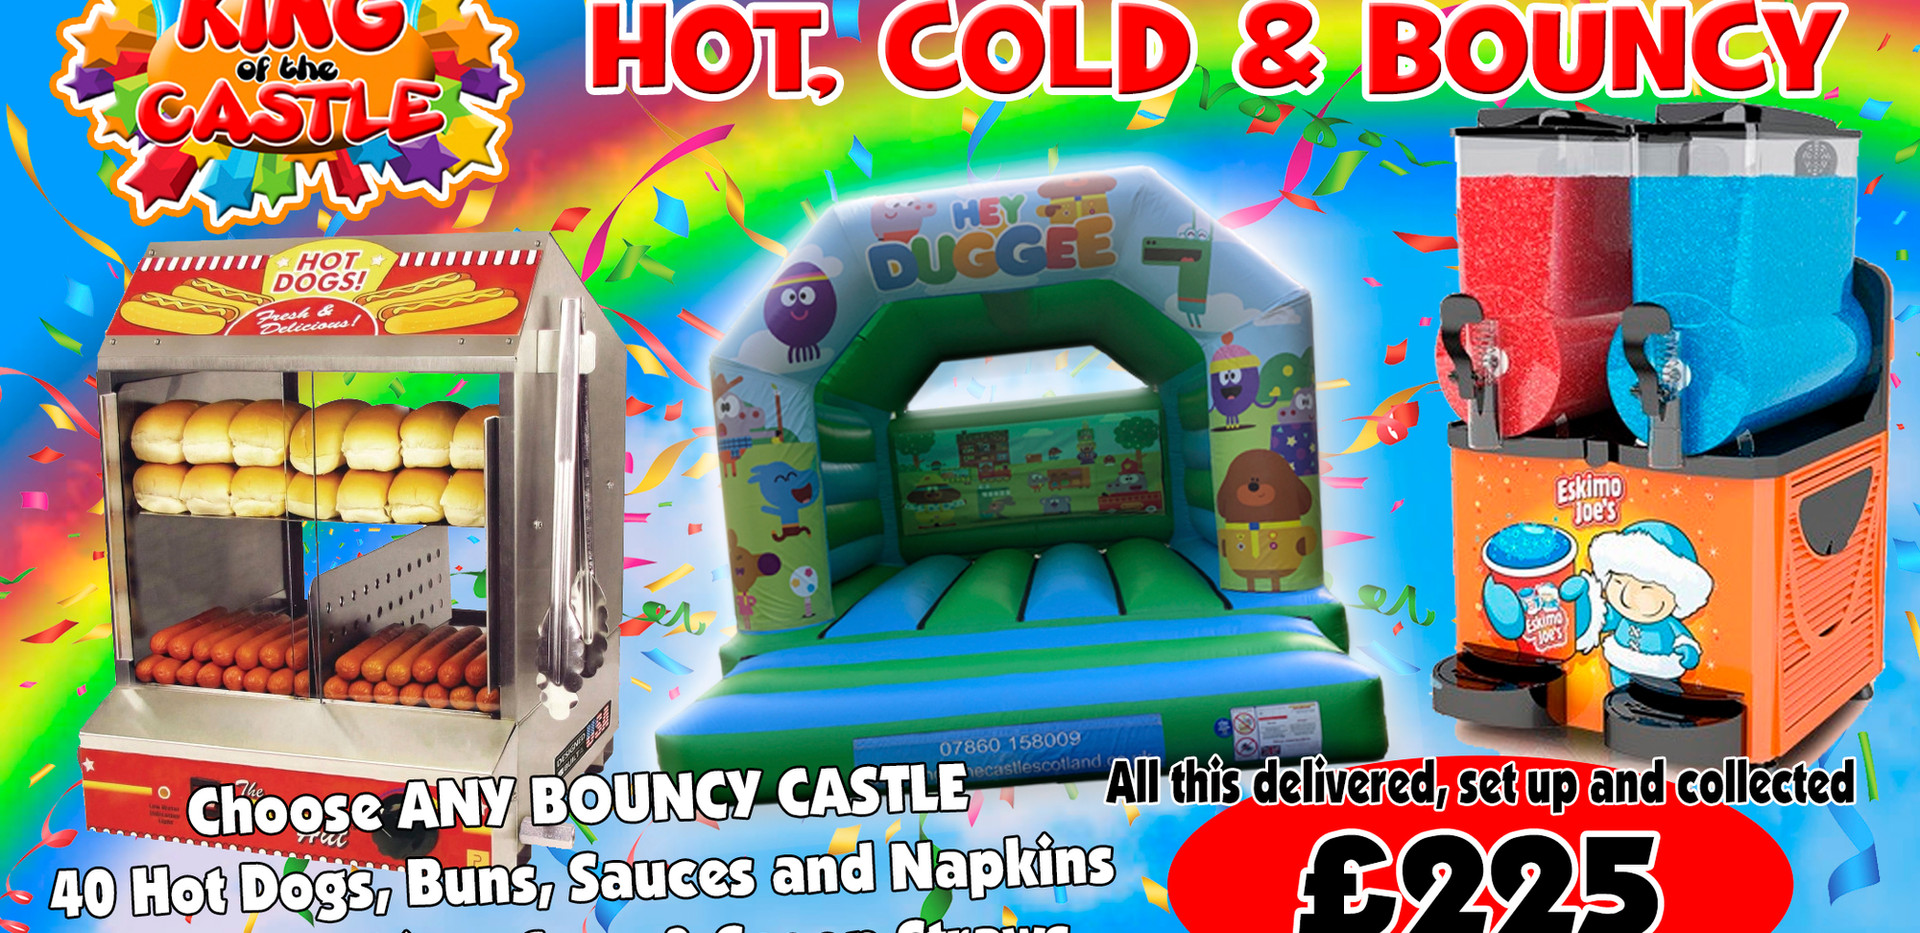 Hot, Cold and Bouncy Party Package